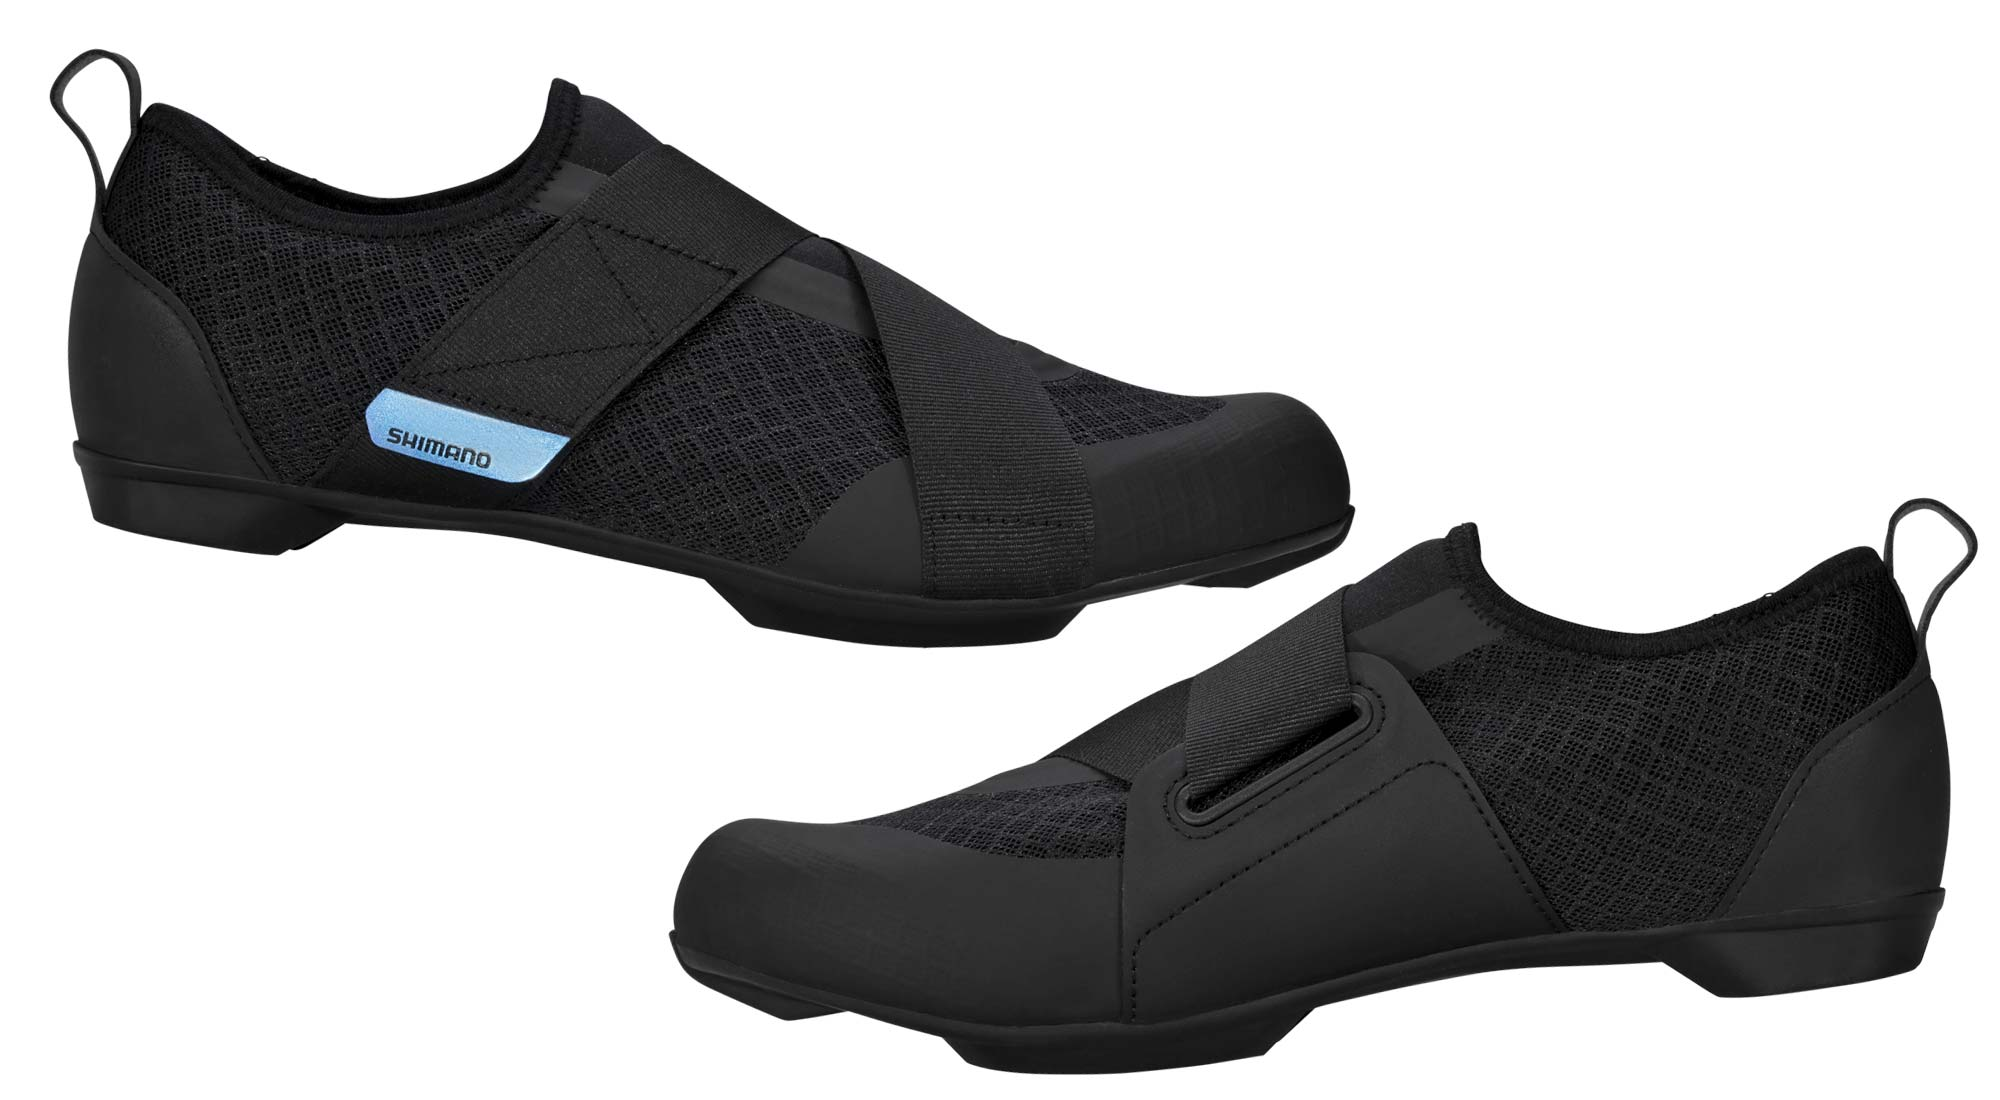 Shimano IC2 walkable indoor cycling spinning shoes, mesh 1-strap upper